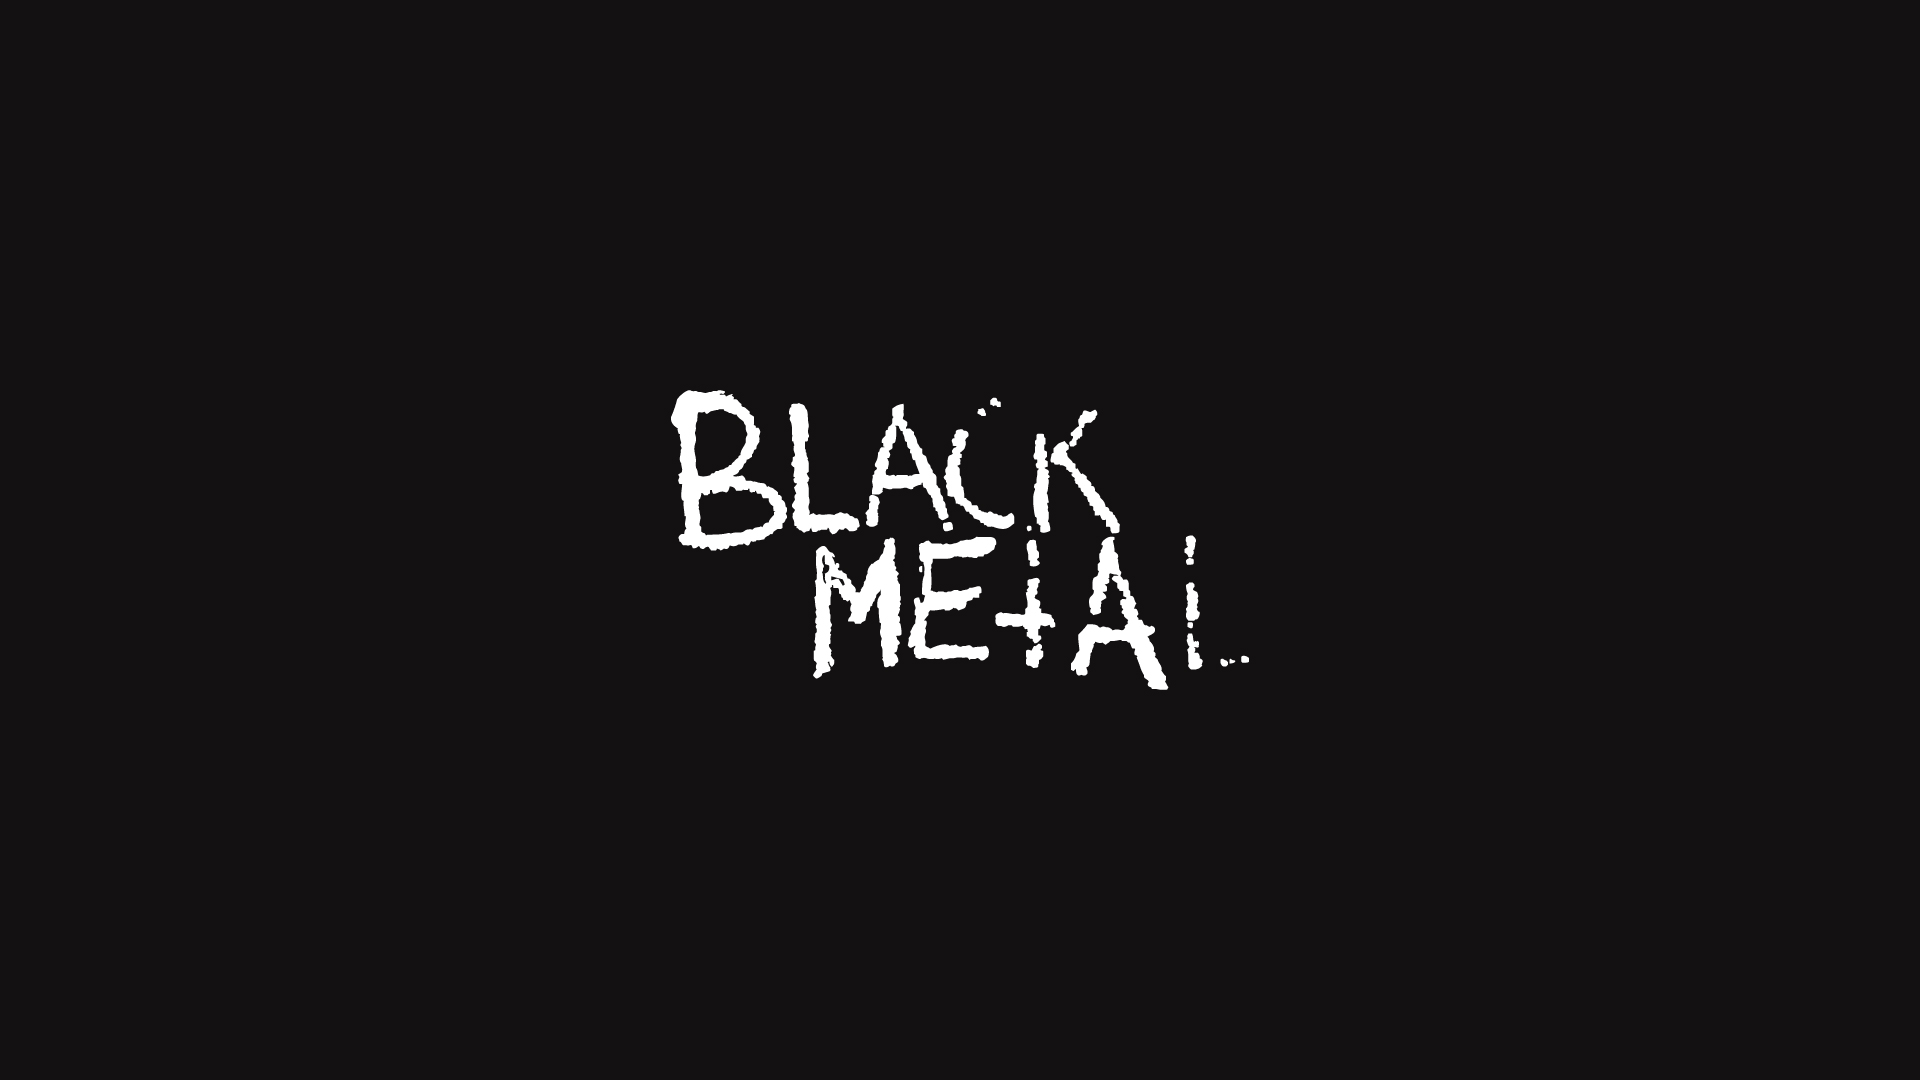 1680x1050 Black Metal 1680x1050 Resolution Hd 4k Wallpapers Images Backgrounds Photos And Pictures